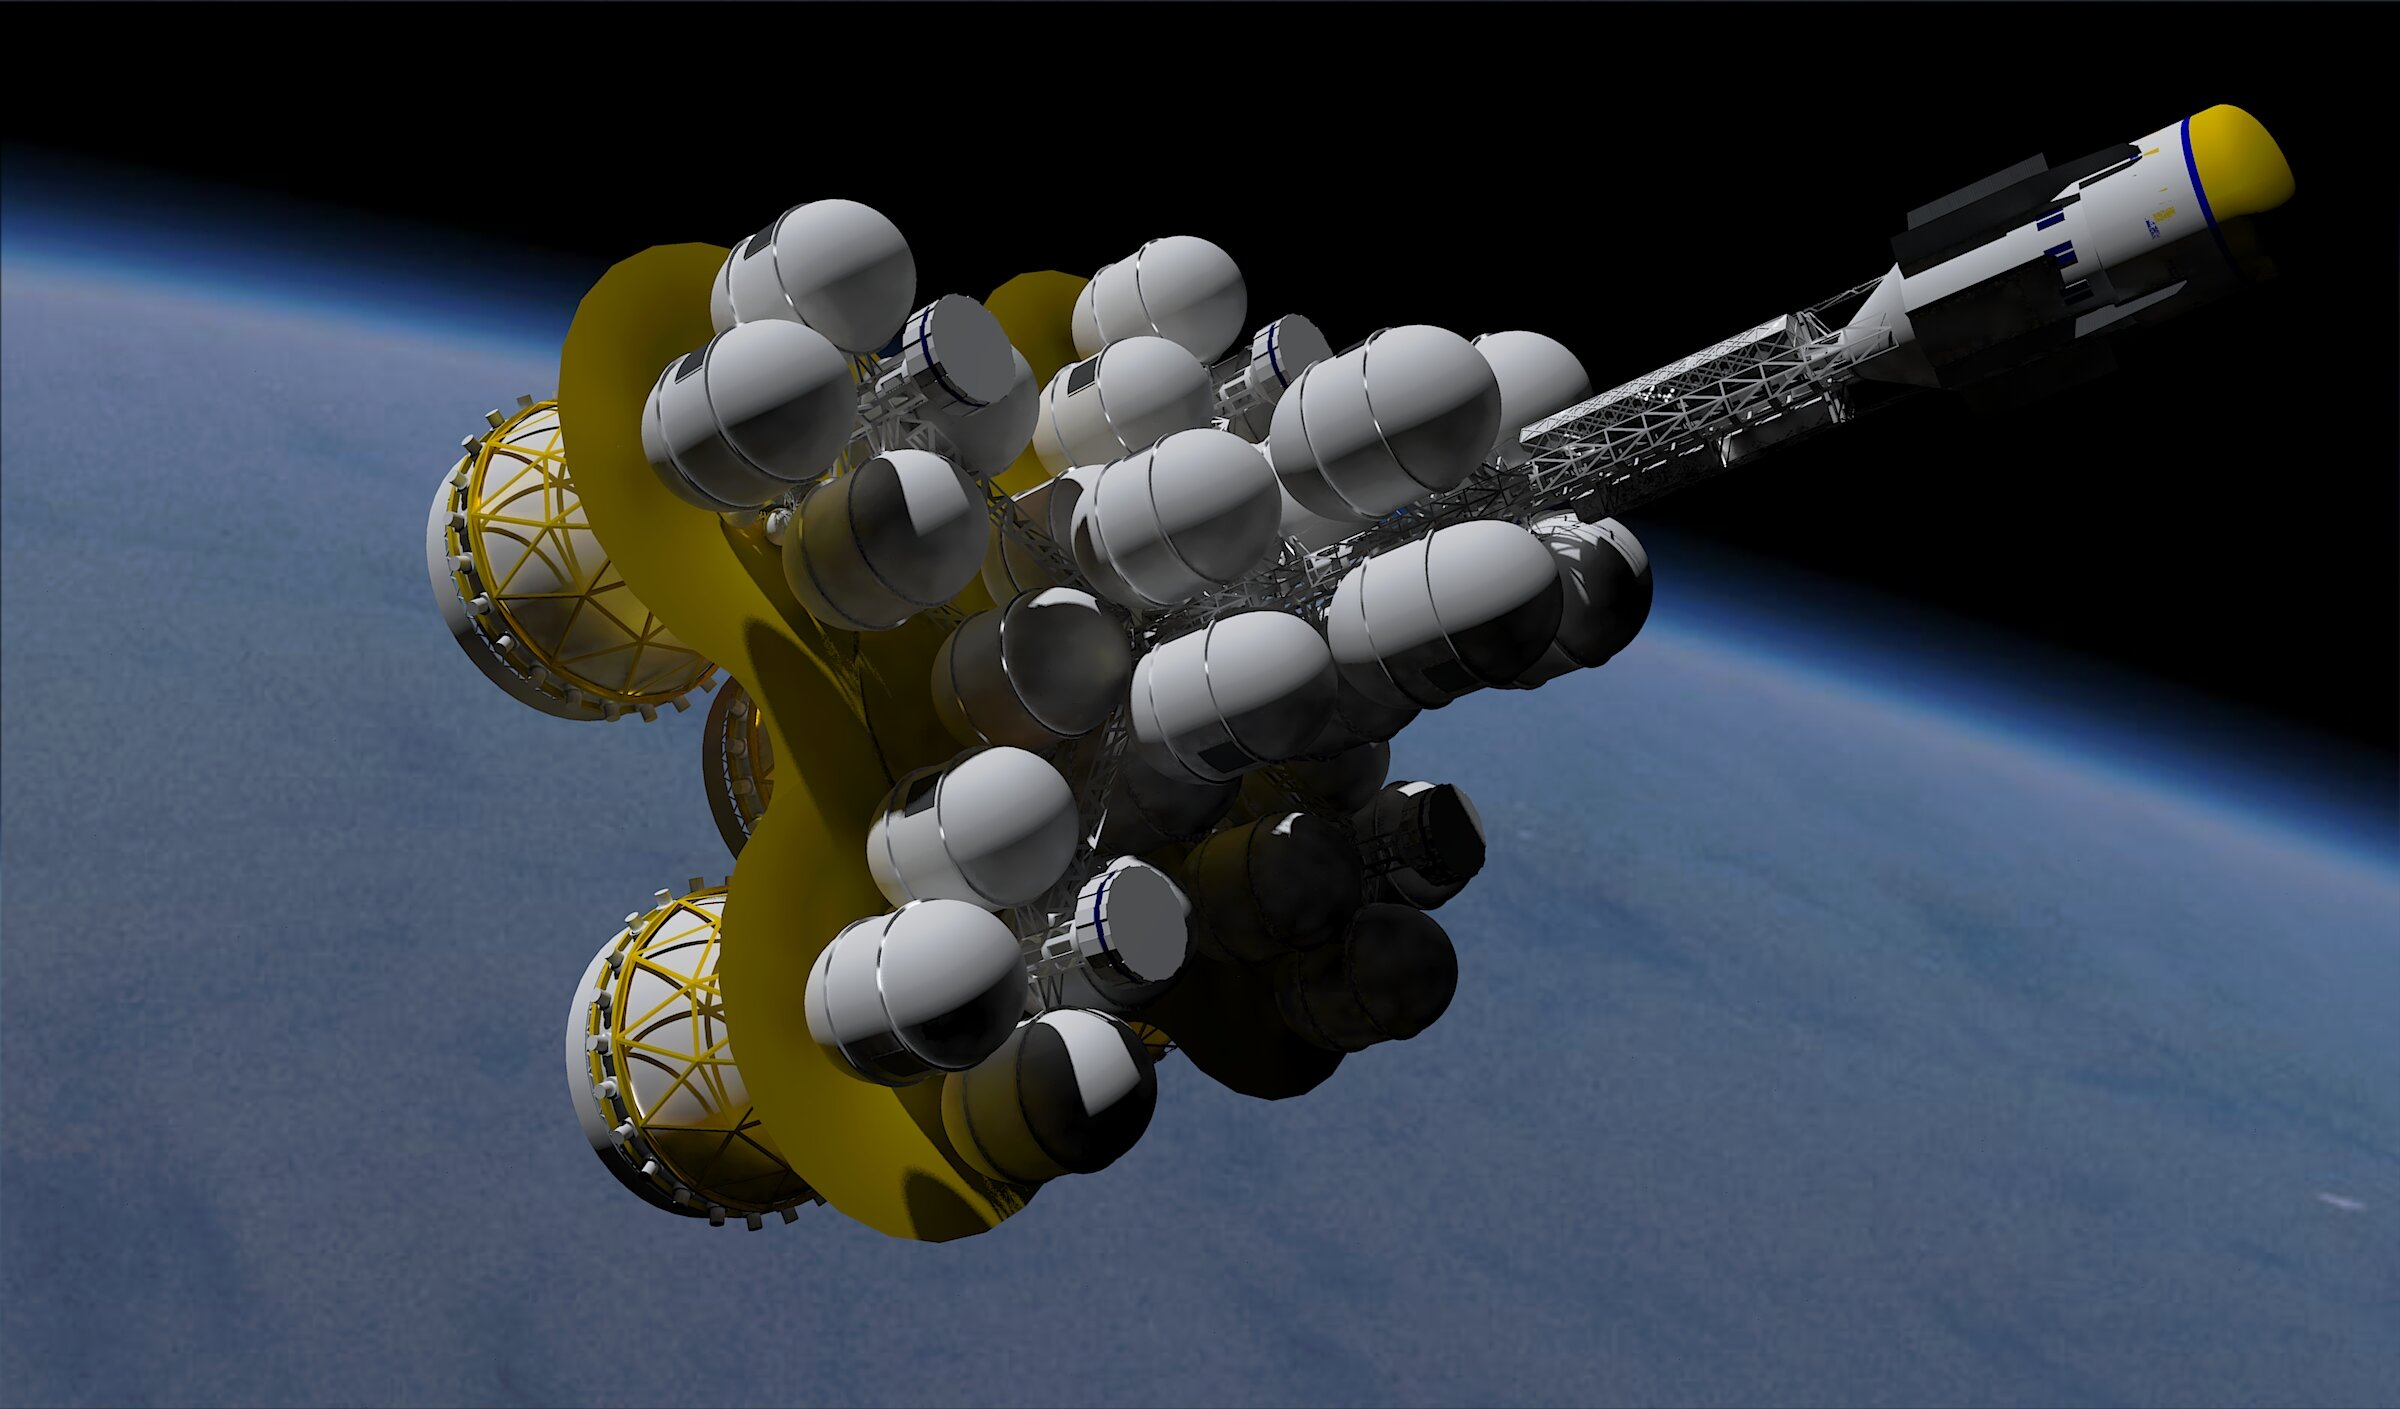 Project Icarus Starship Endeavour Concept Vehicle Design